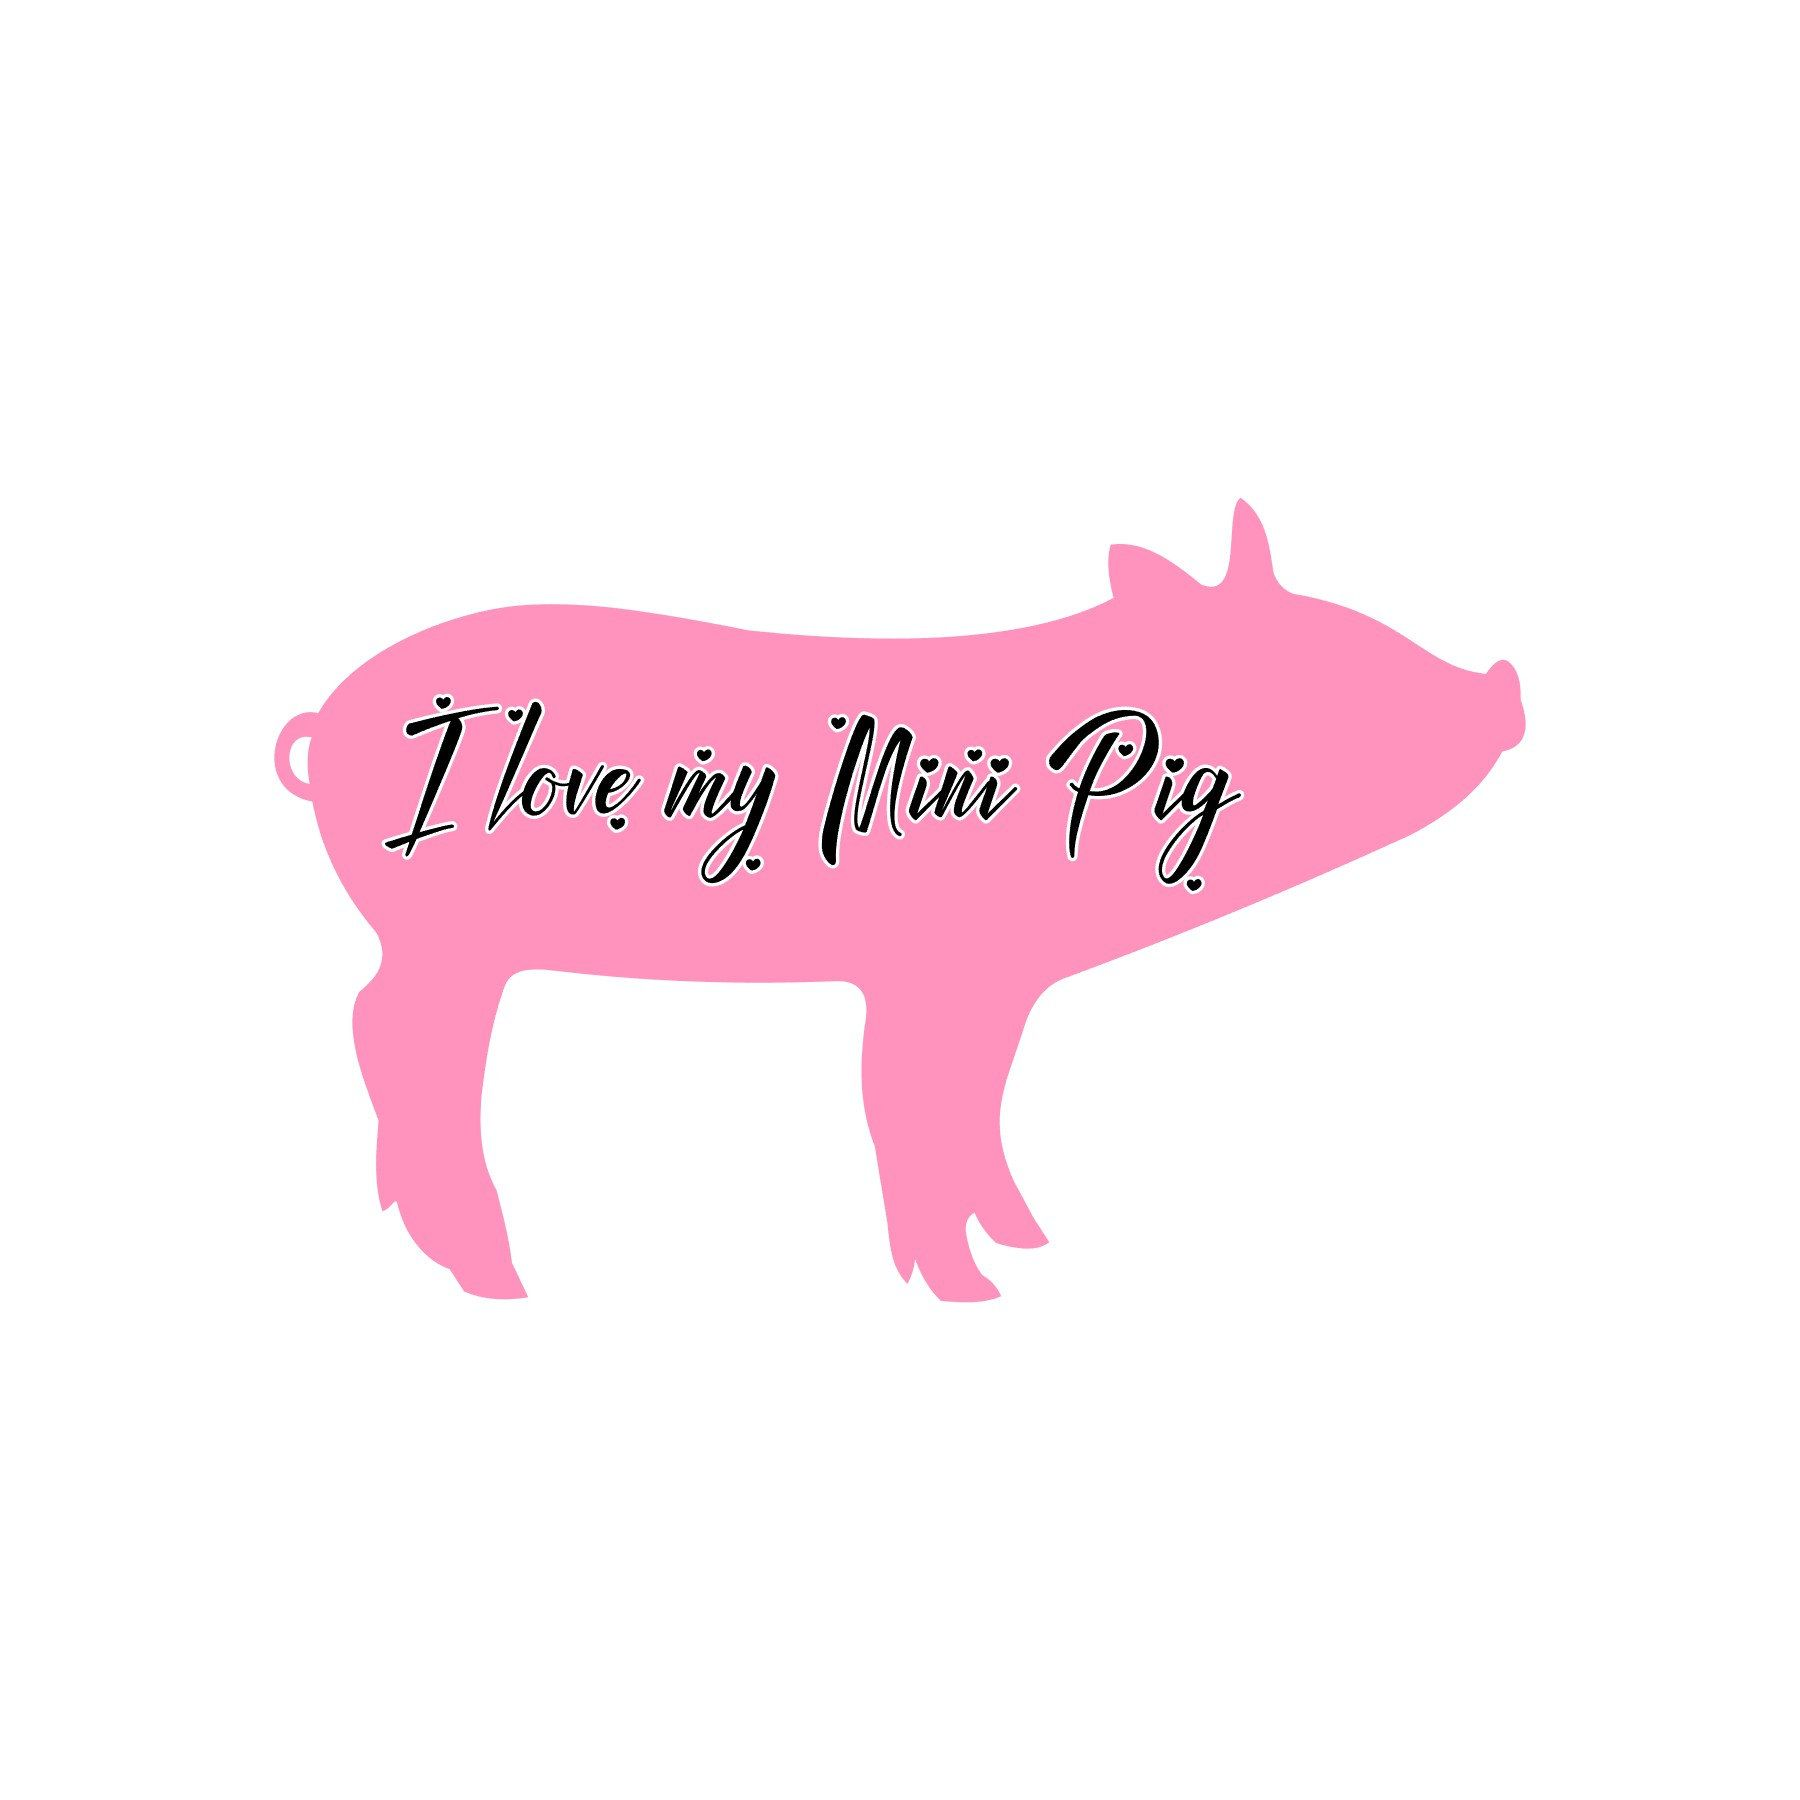 Show how much you love your mini pig mini pig decal